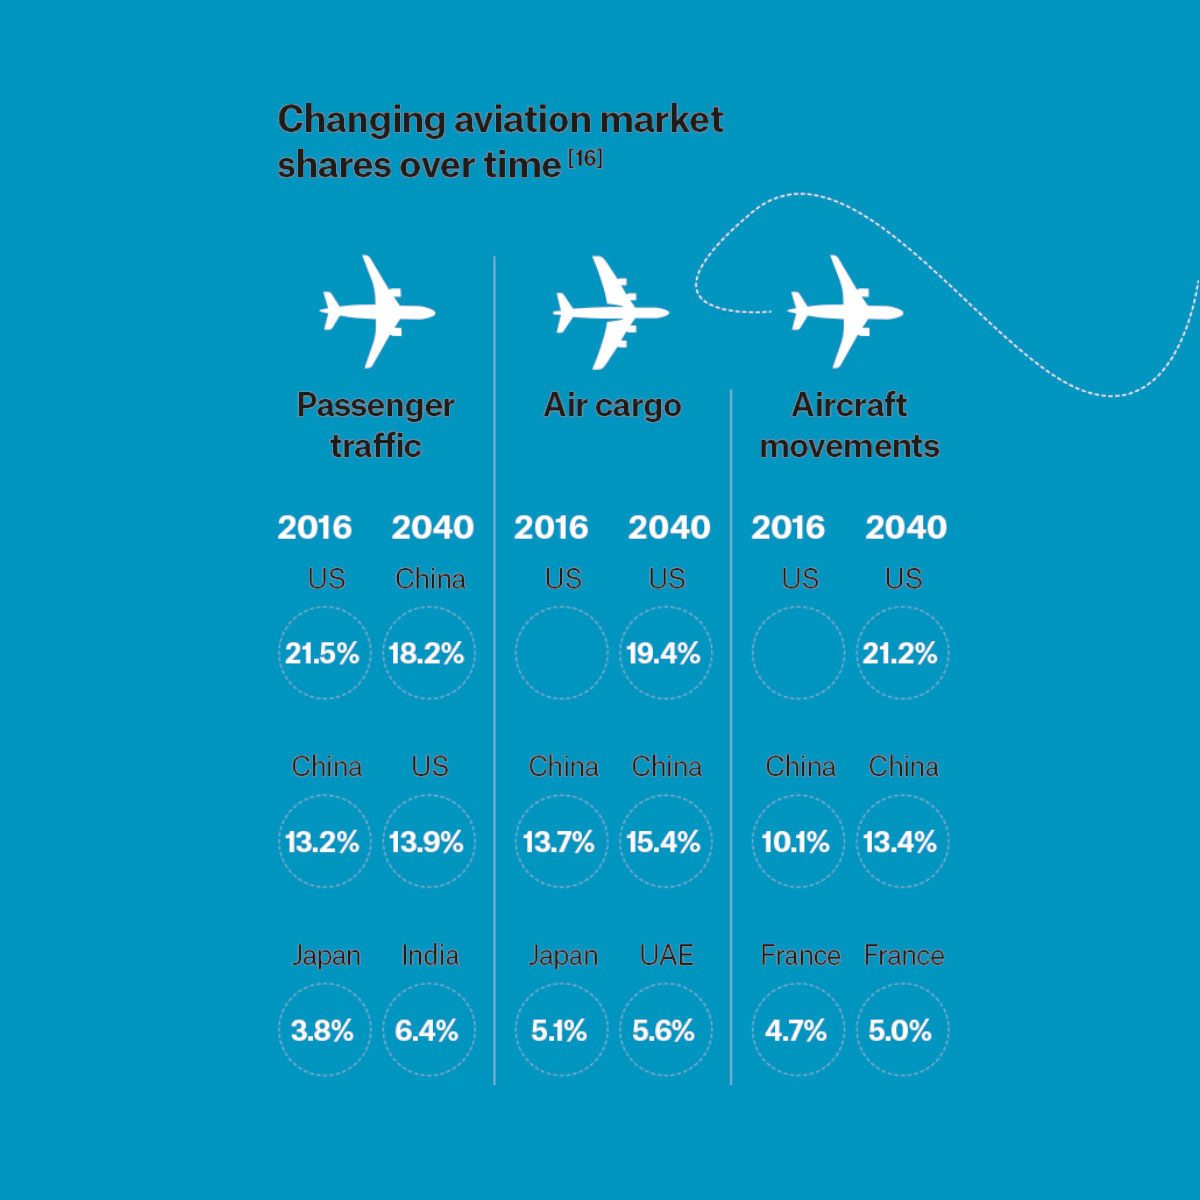 Graph showing the changes in aviation market shares over time